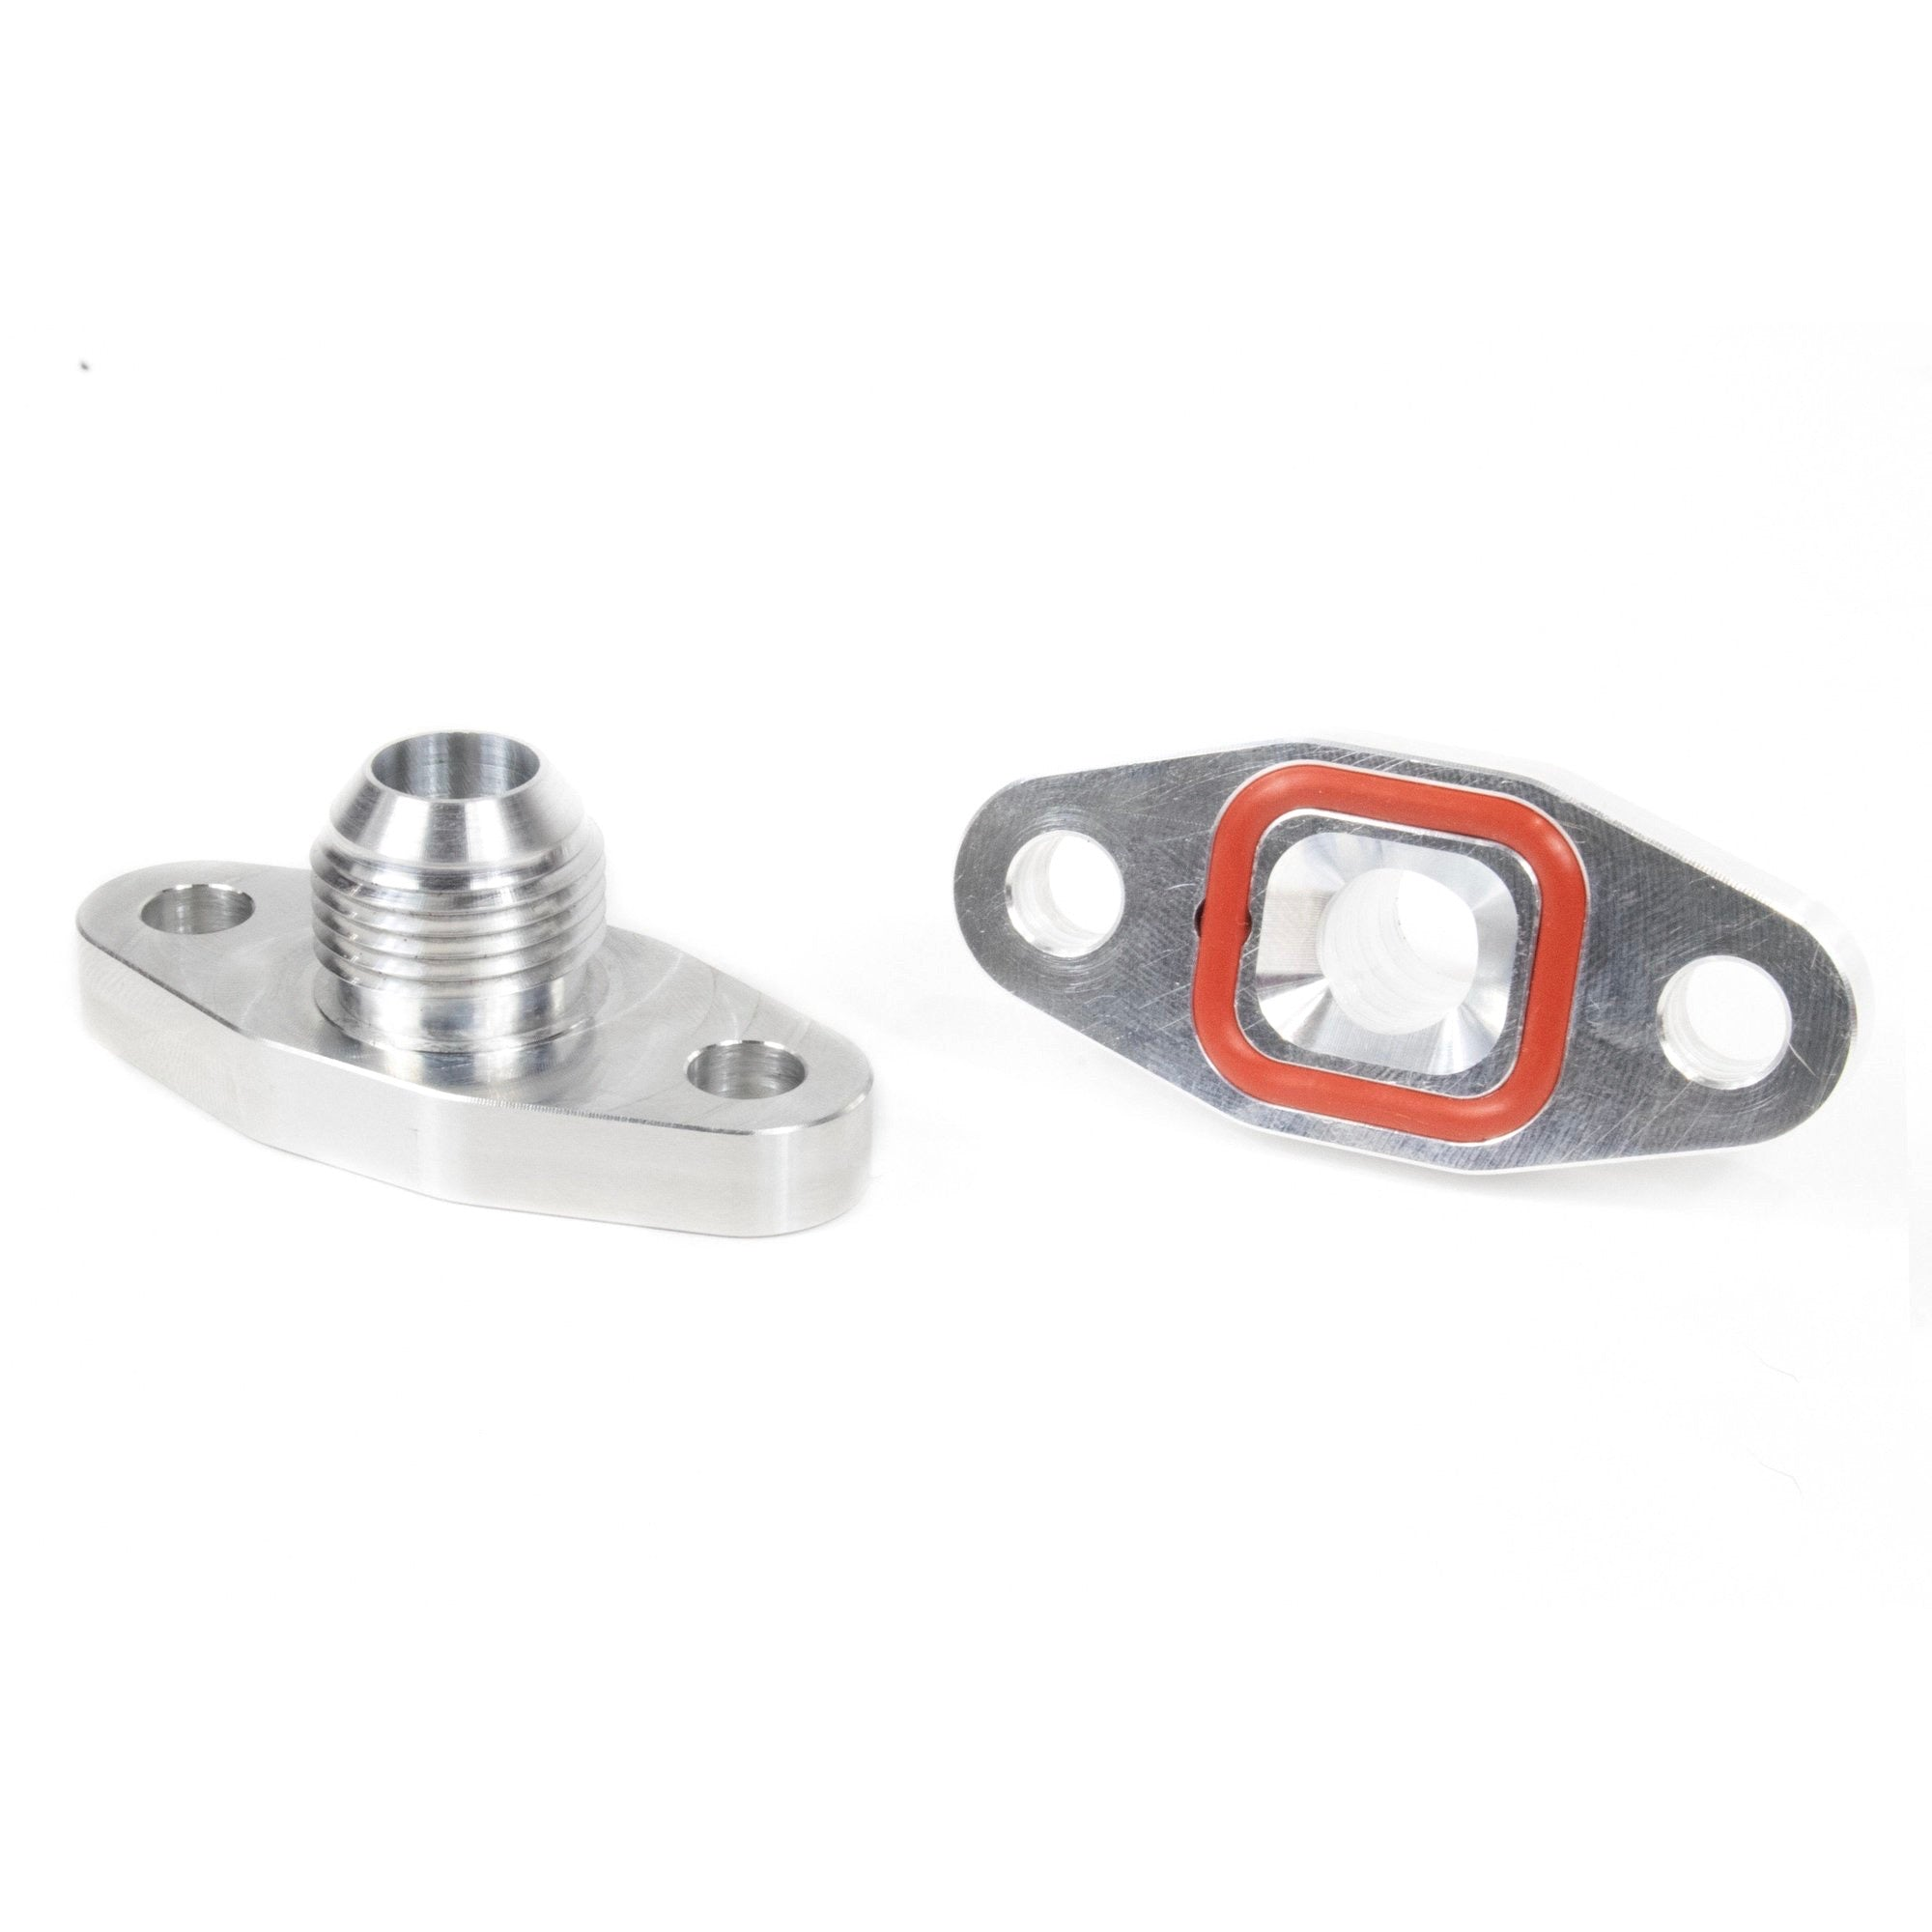 Motion Billet T4 T6 Turbo Drain Oil Flange 10AN 21-10008-Motion Raceworks-Motion Raceworks